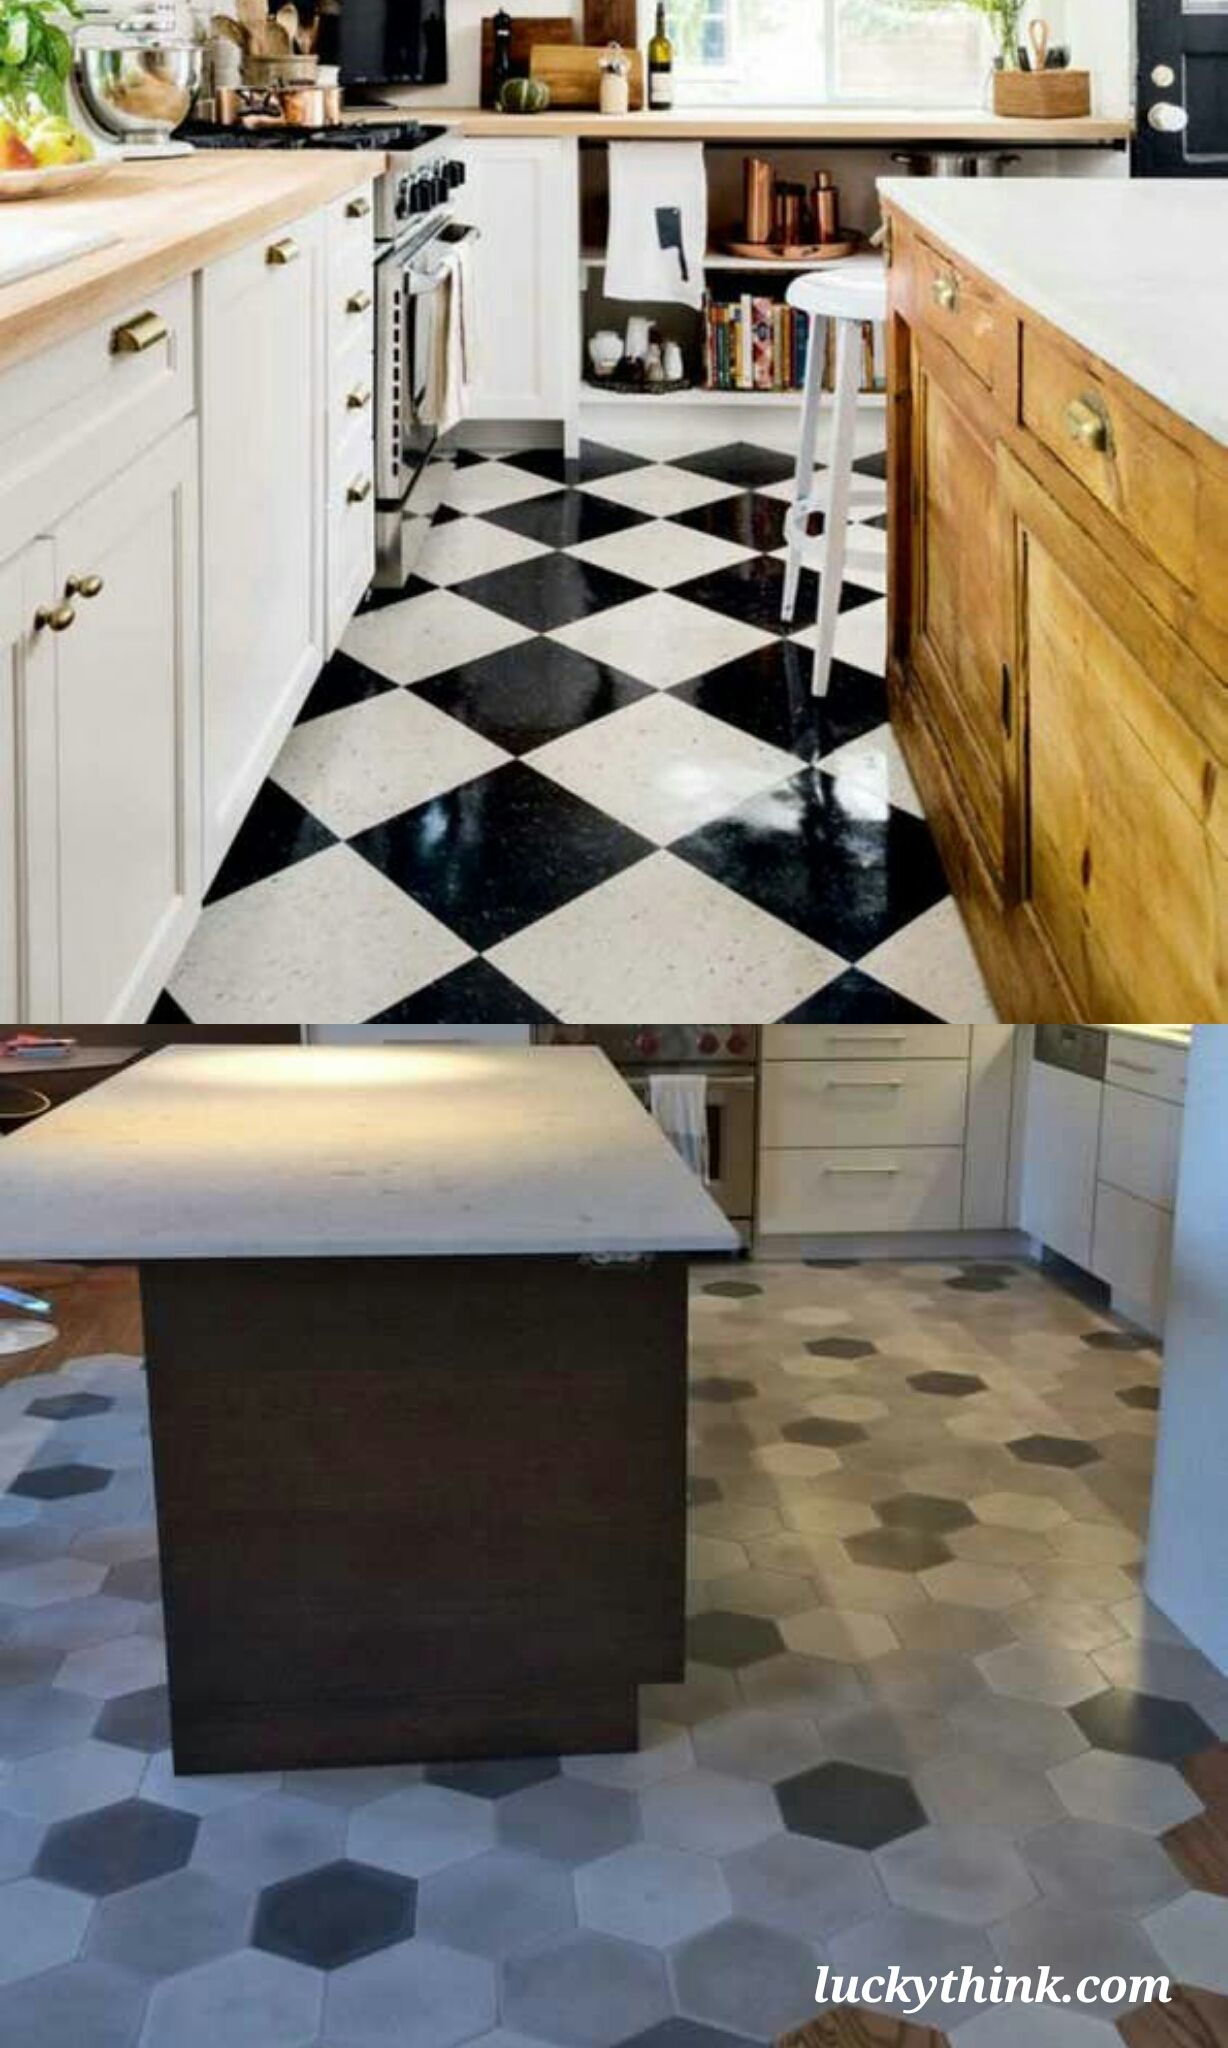 Some Examples of Modern and Traditional Kitchen Floor Ideas ...